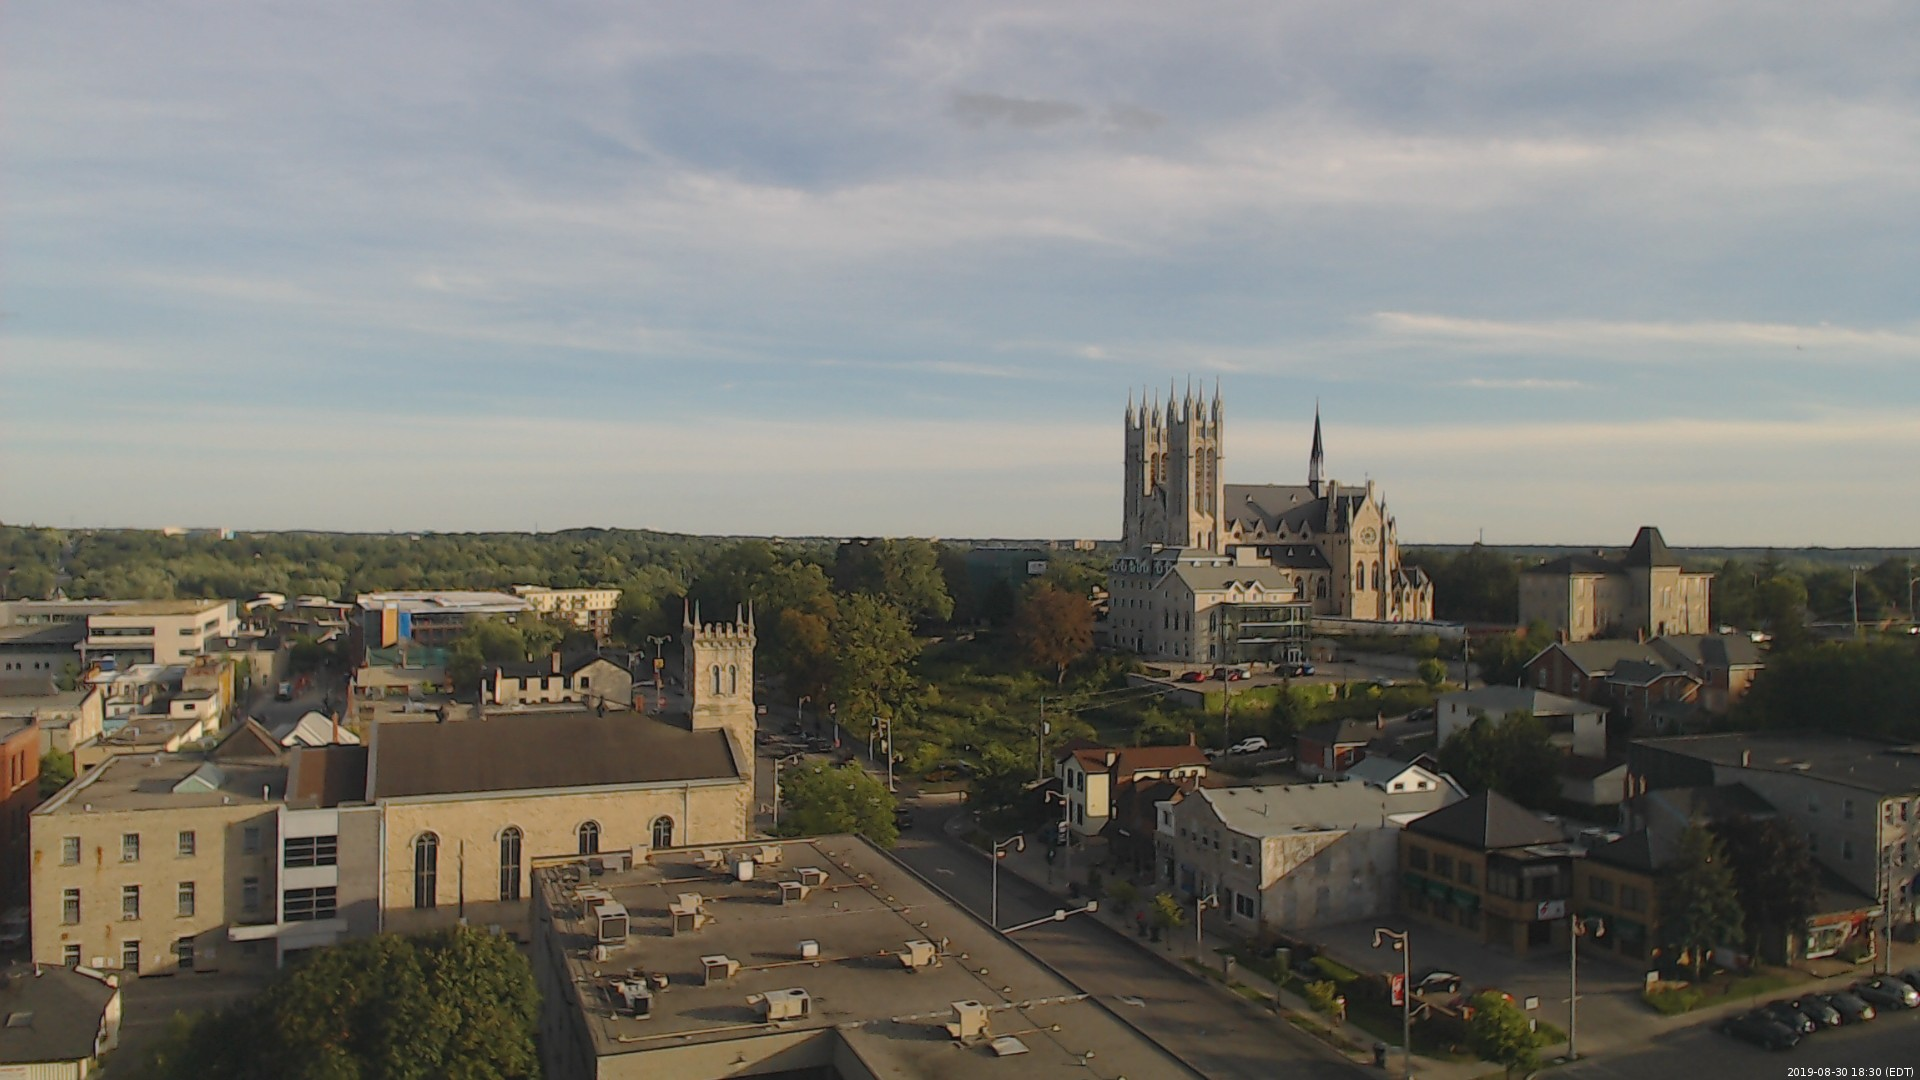 webcam capture of downtown Guelph